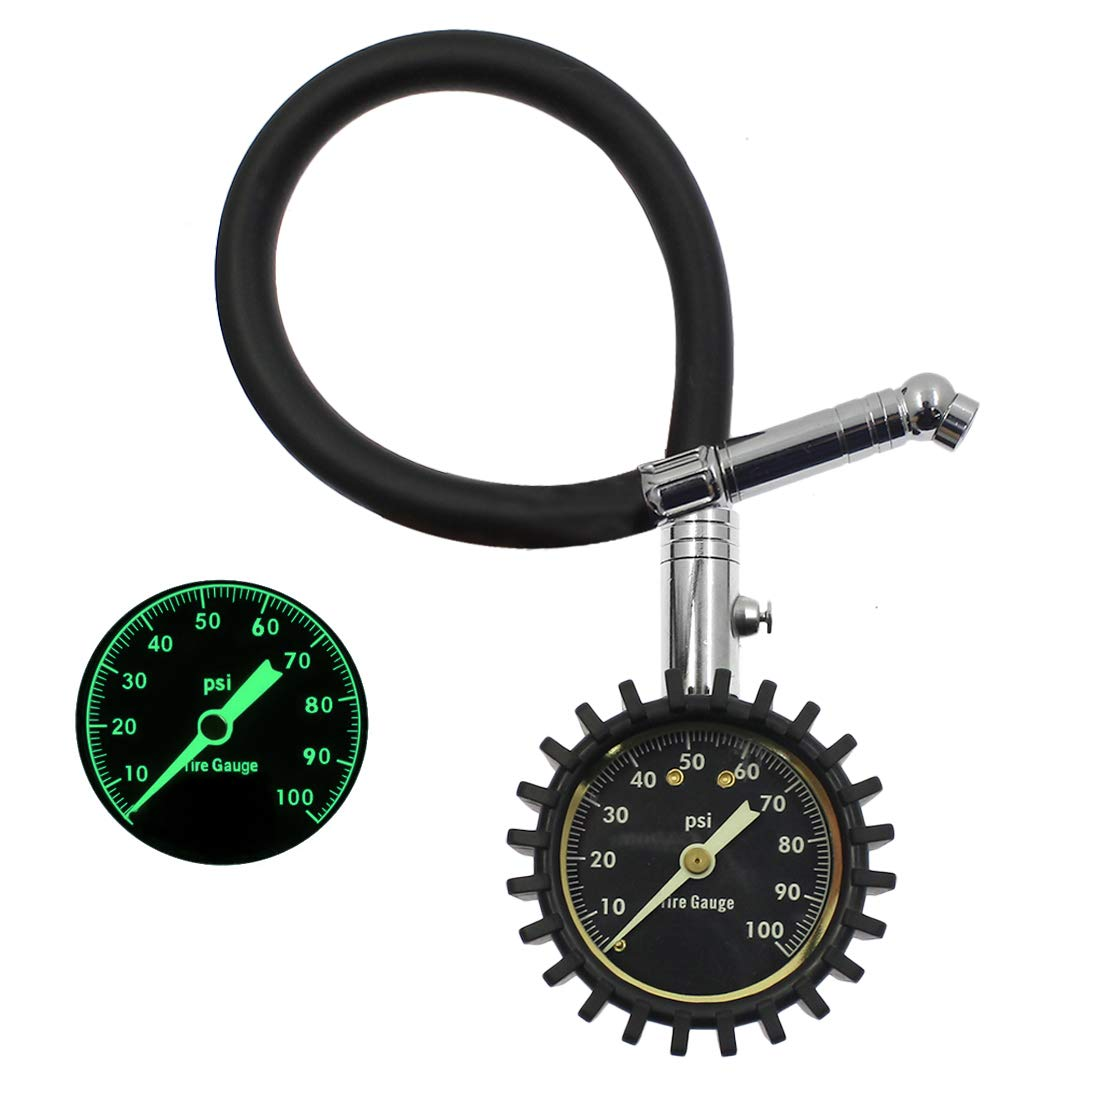 BokWin Tire Pressure Gauge (0-100 PSI), Certified ANSI B40.1 Accurate with 2